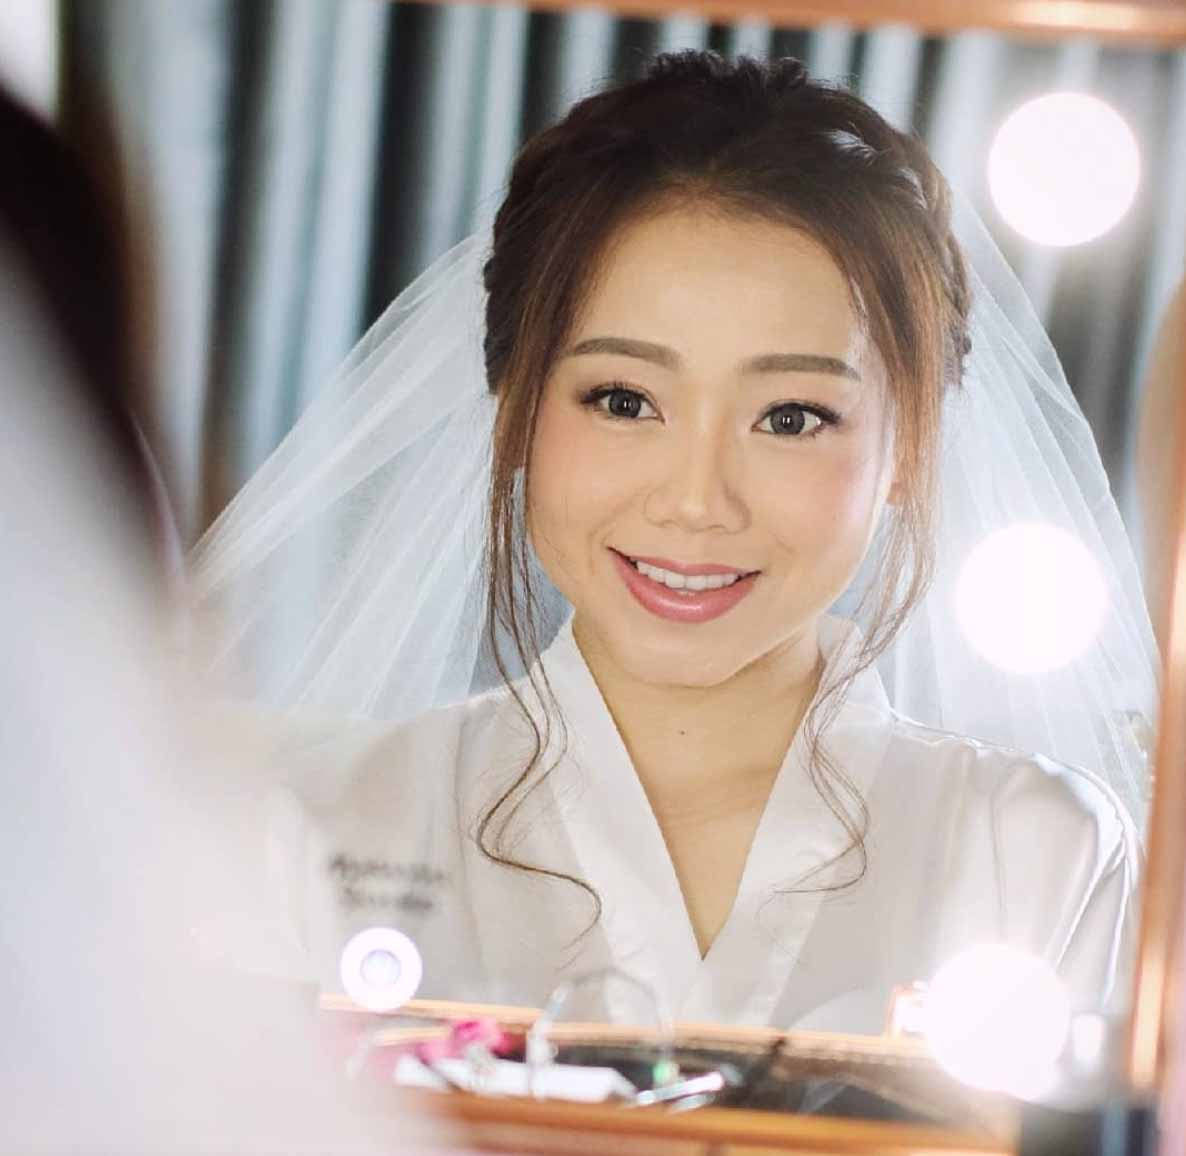 Natural Makeup & Hair for Bride On Wedding Day-5